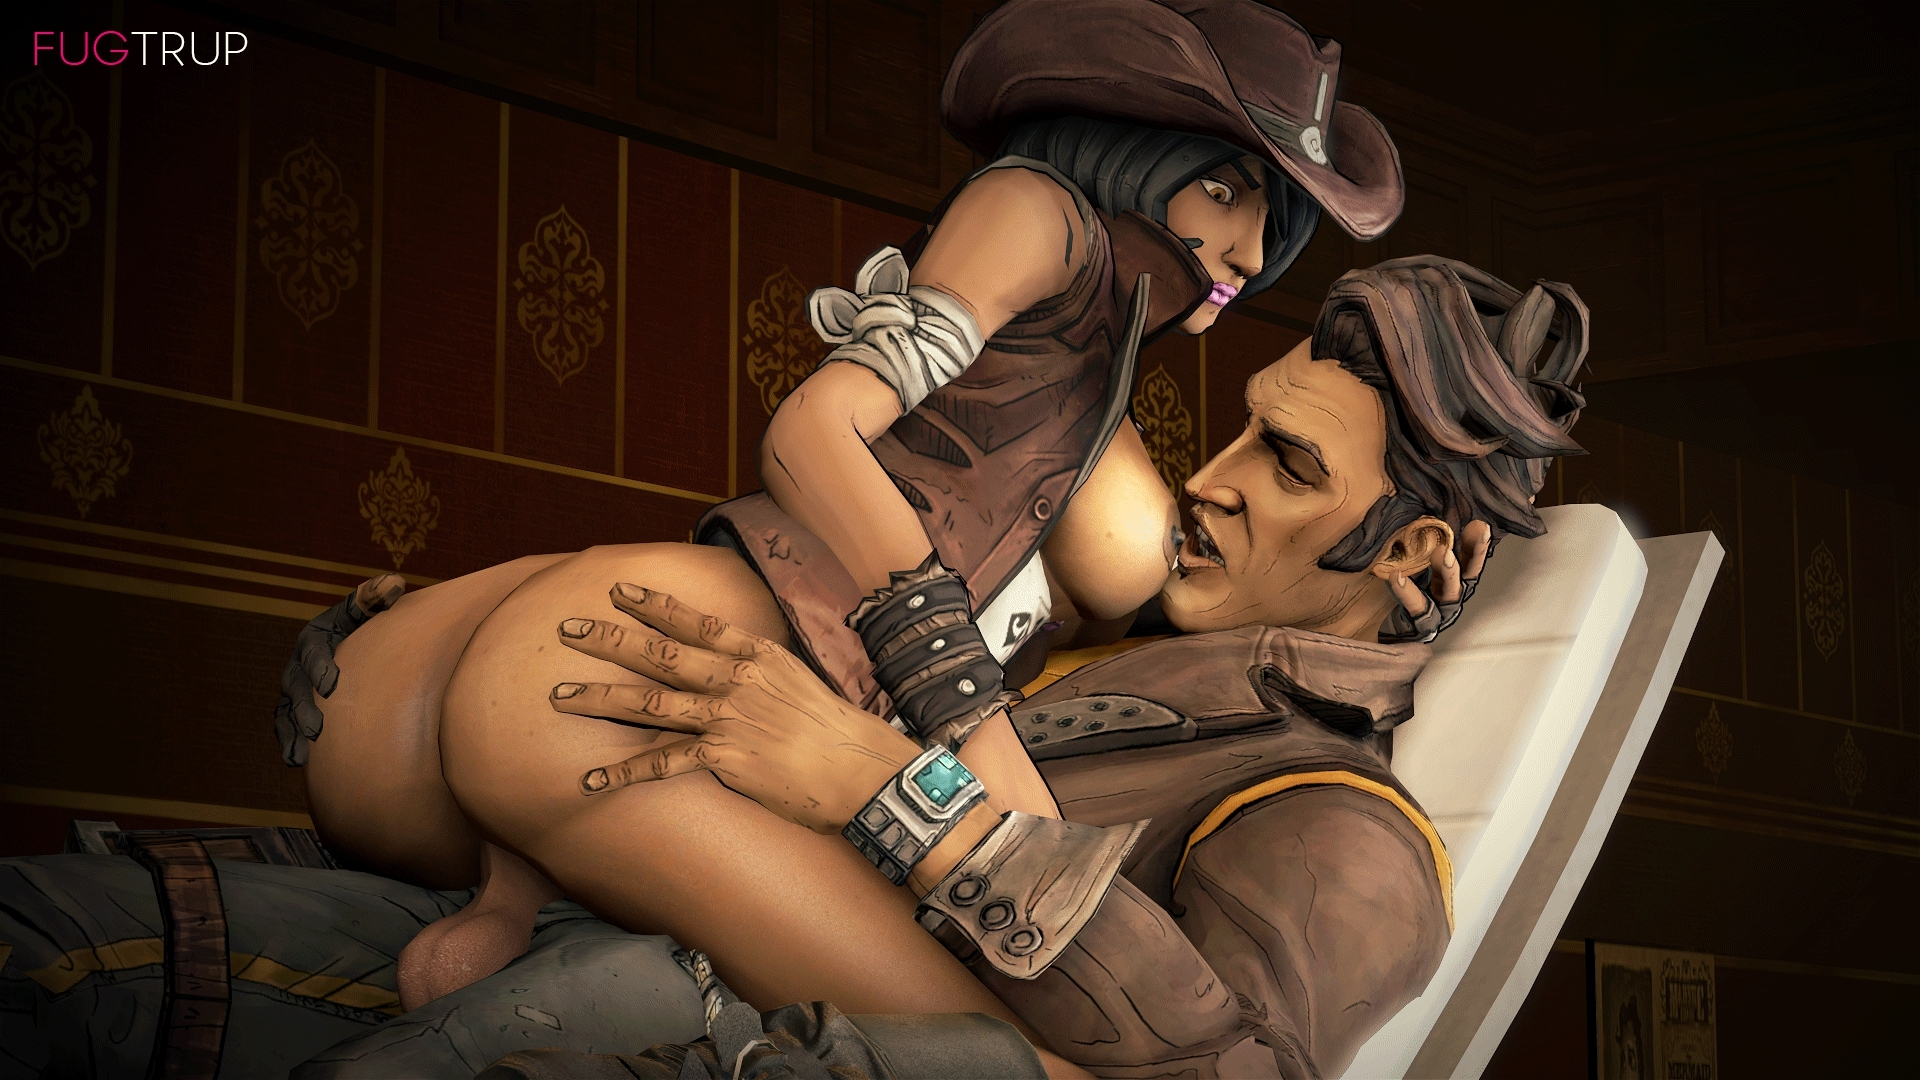 Moxxi hentai gifs softcore whore